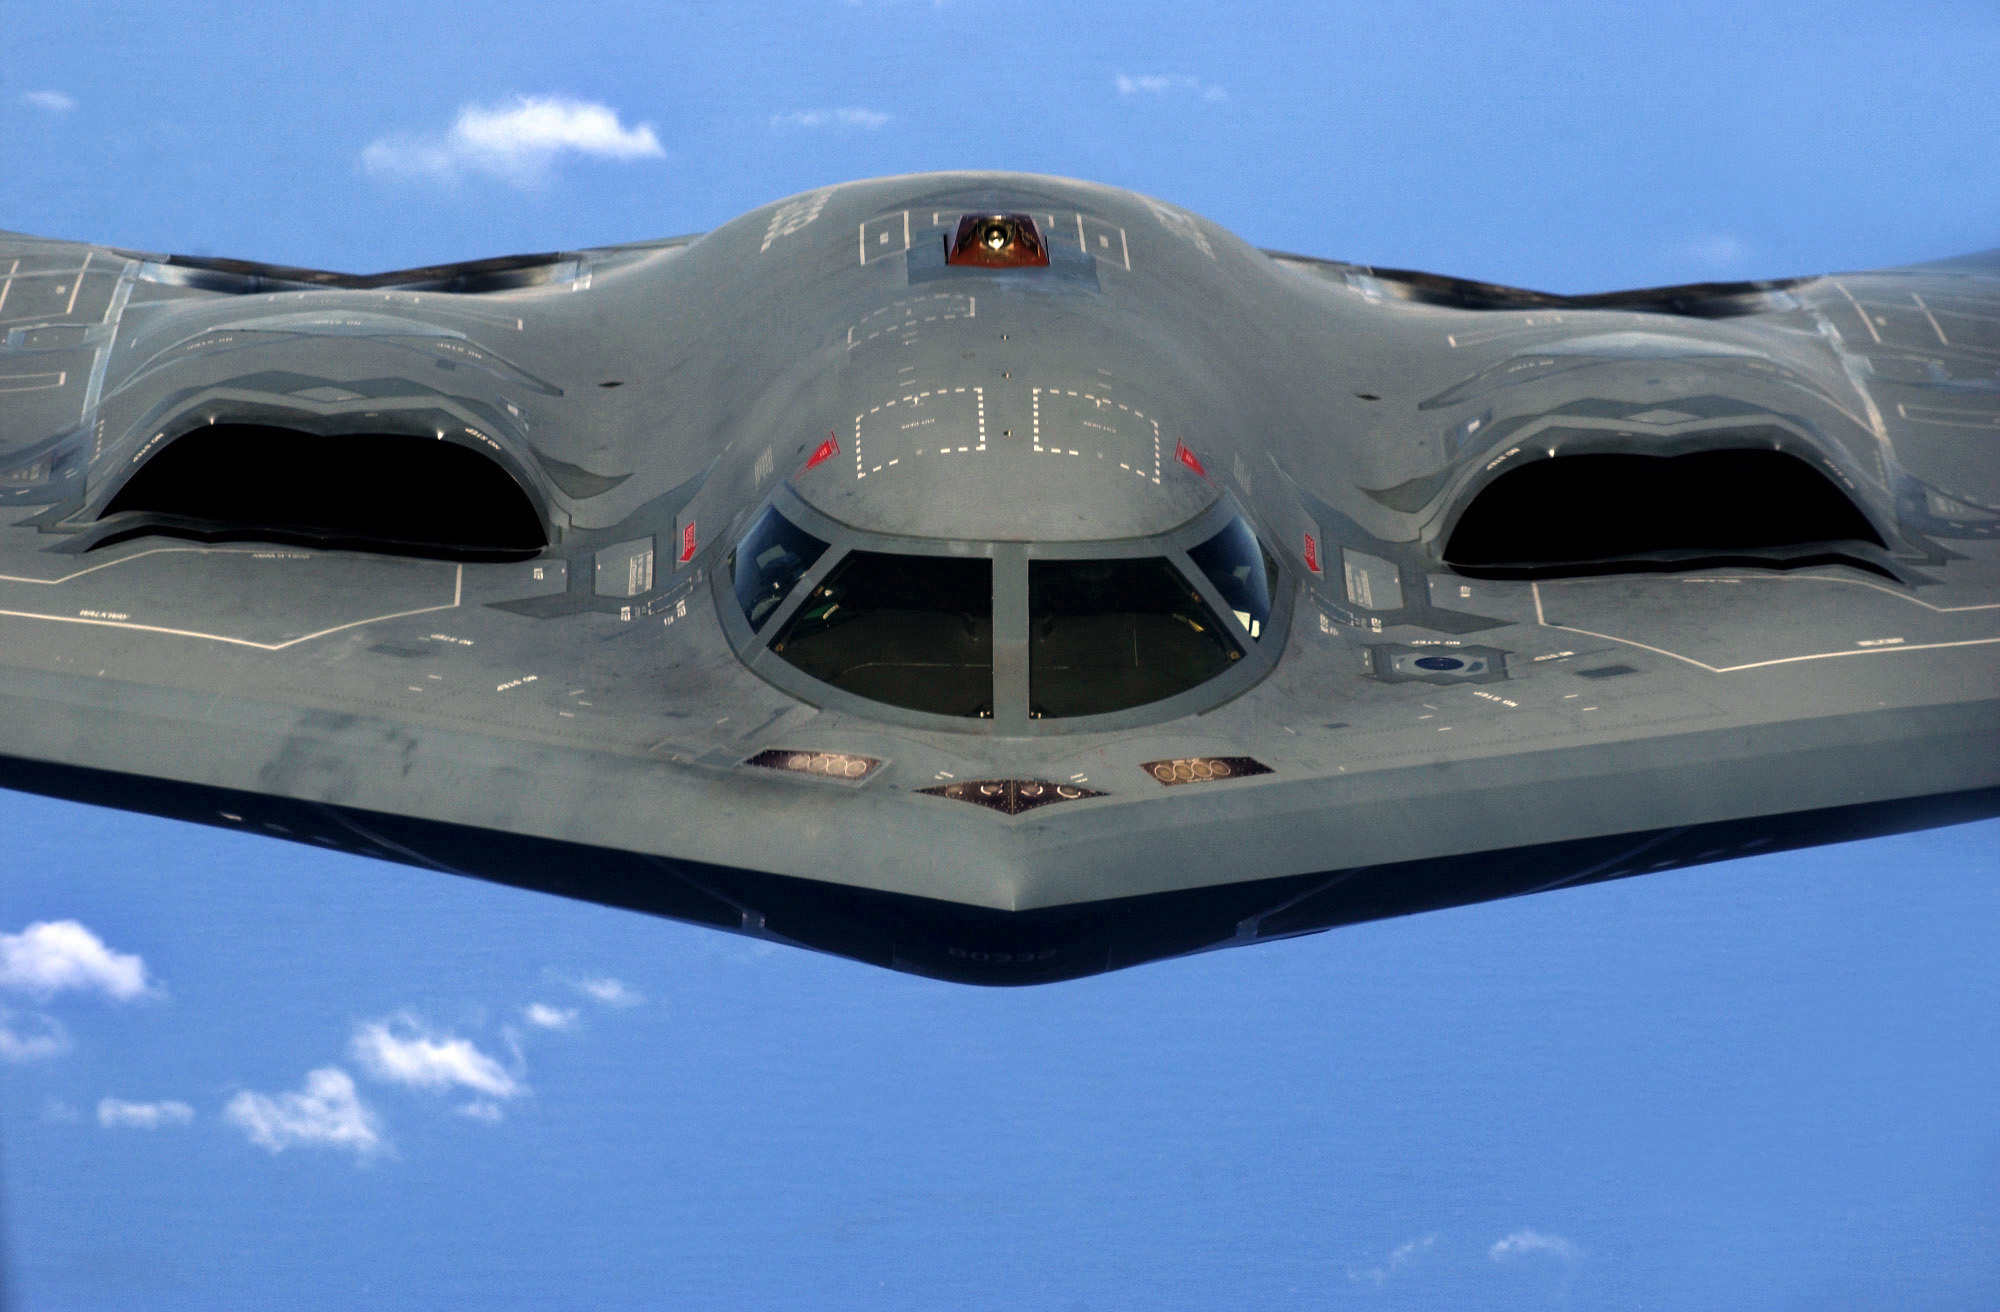 Mic Drop, B-2 Bomber Style: Watch This Stealth Bomber Wipe Out A Mock